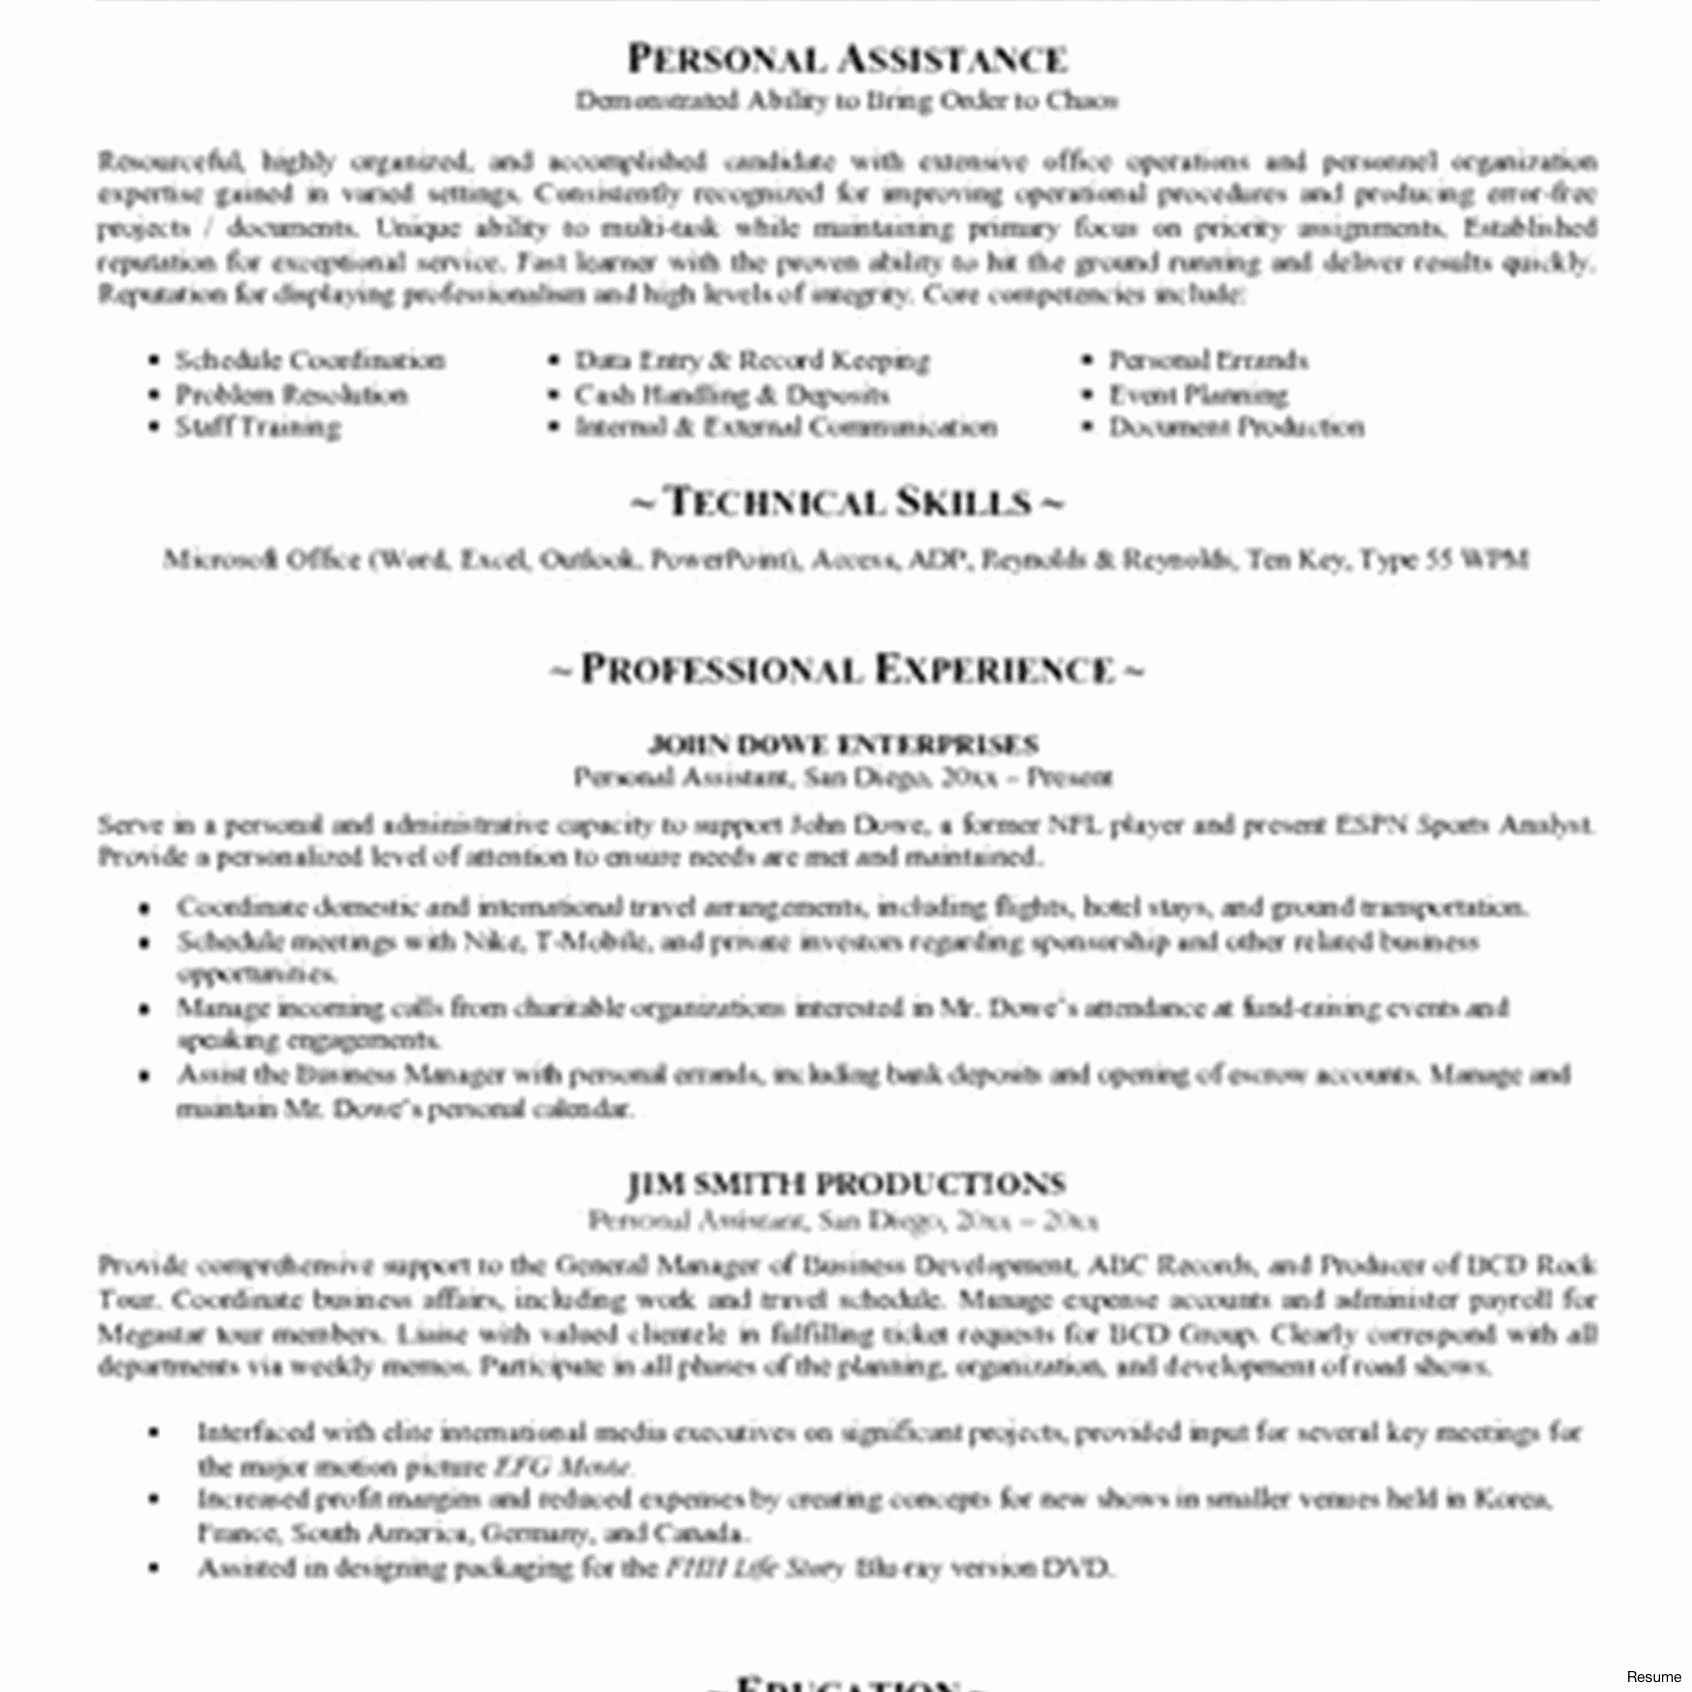 dhs personal assistant job description Collection-Personal assistant Job Description Resume 3-p